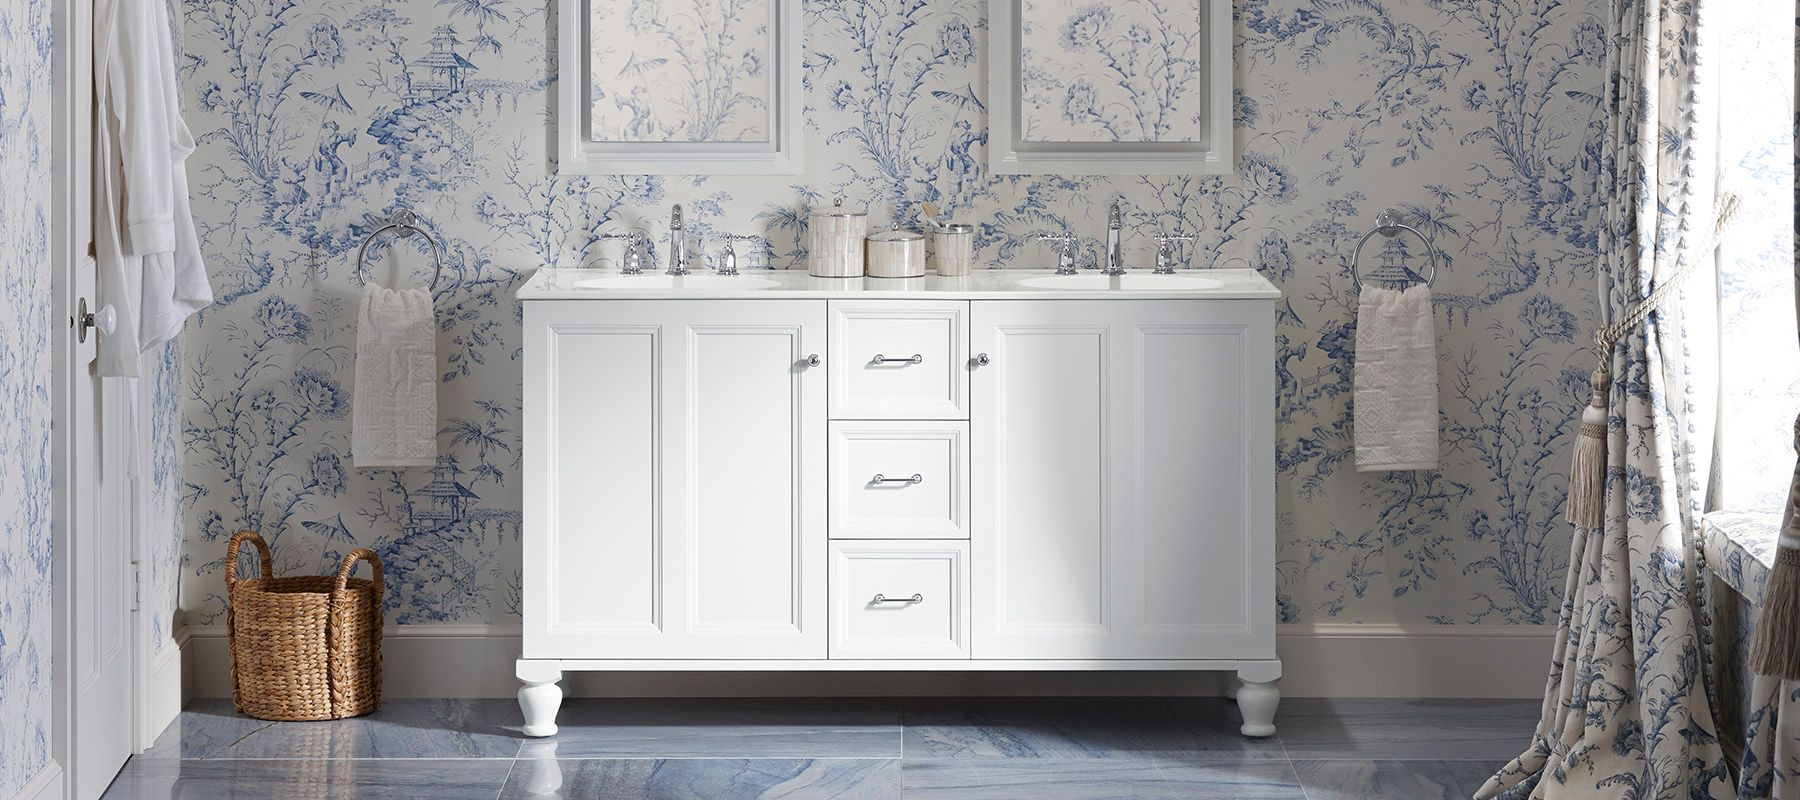 Bathroom Vanities East Brunswick Nj bathroom vanities |bathroom | kohler